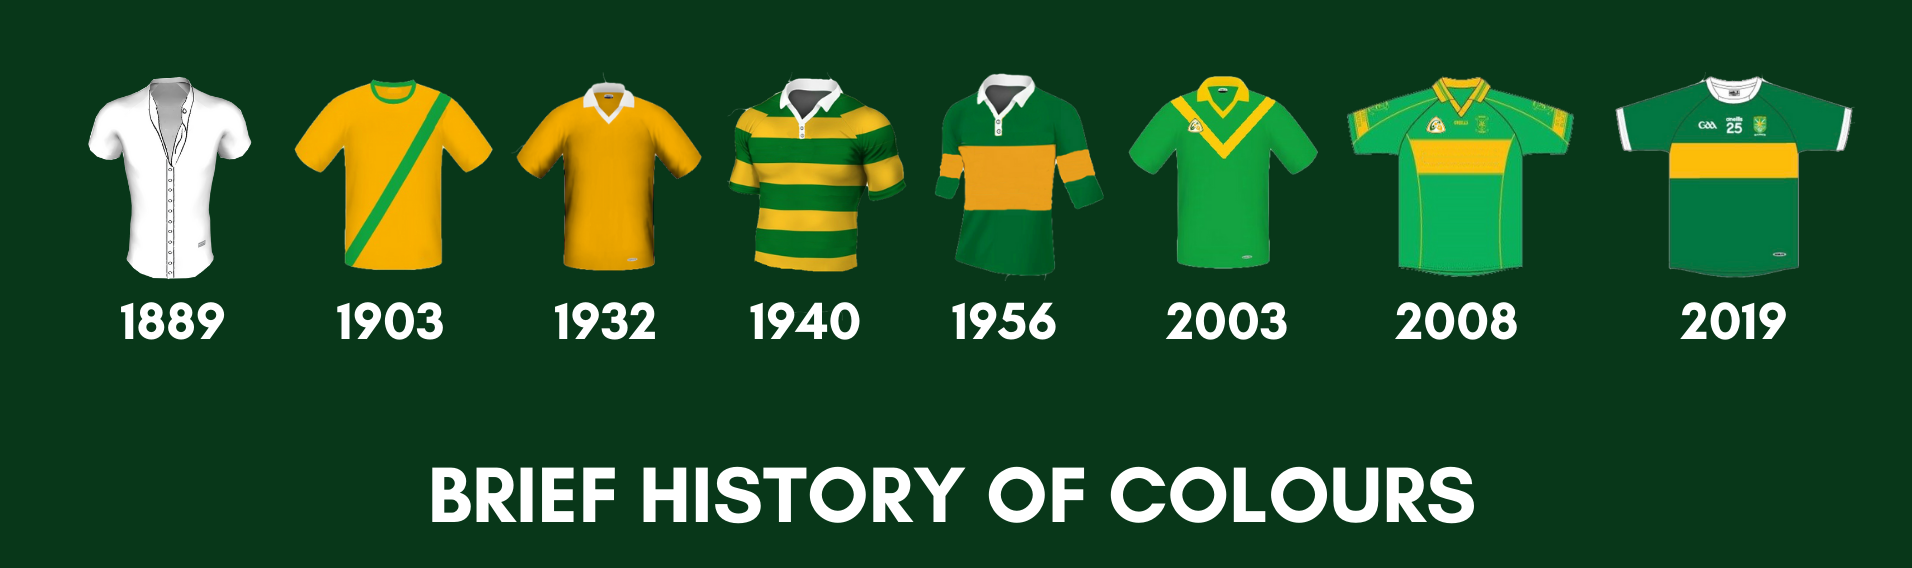 http://blackwater.gaa.ie/wp-content/uploads/2020/02/History-of-jerseys.png